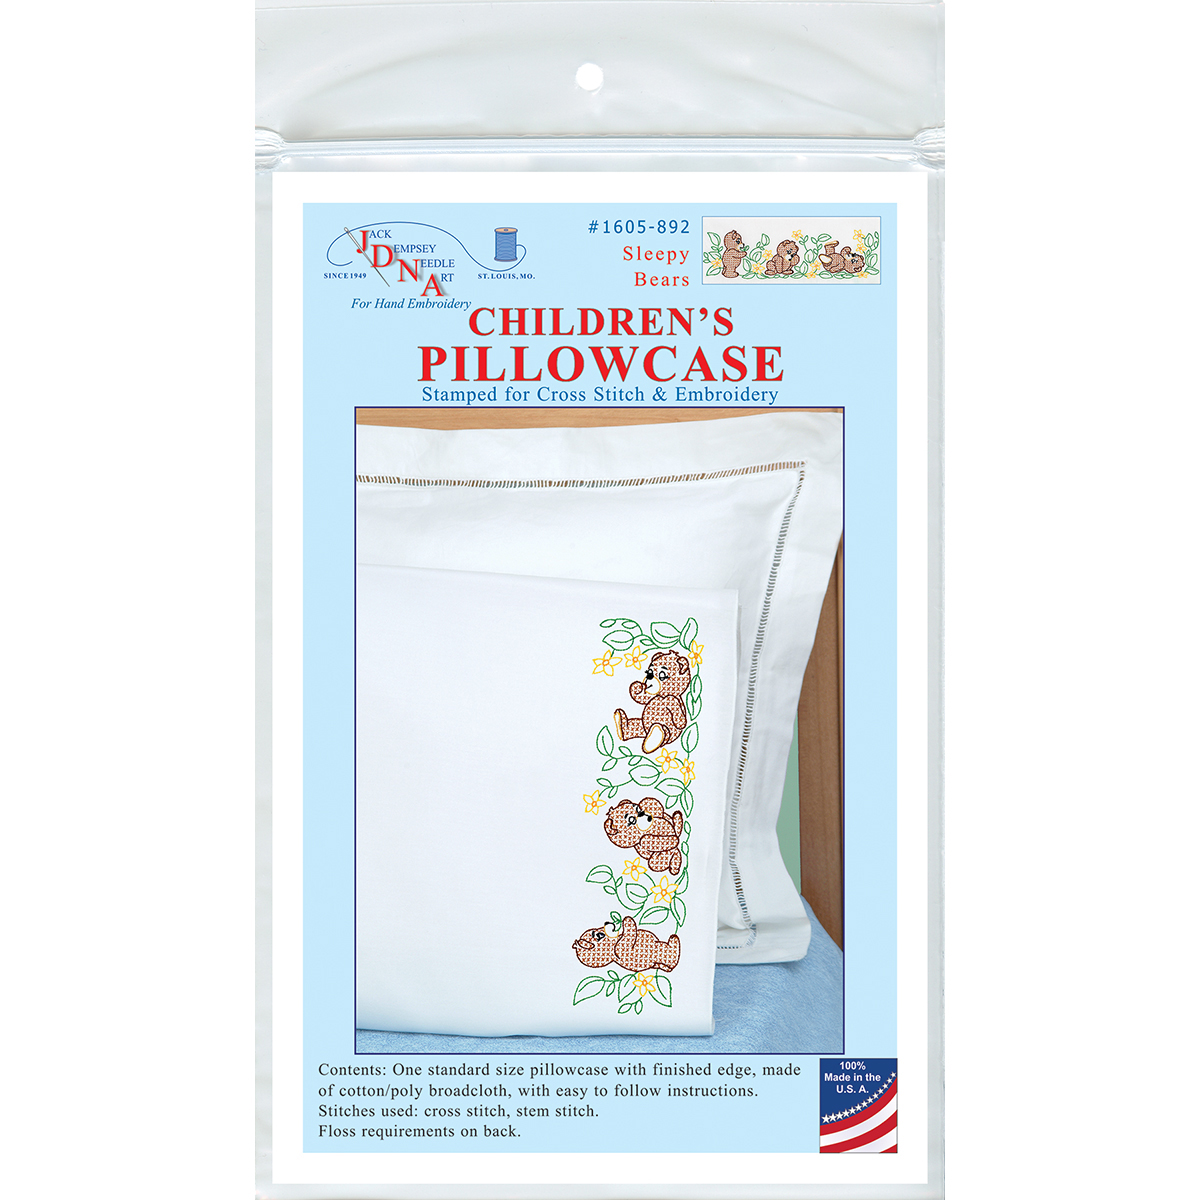 Children's Stamped Pillowcase with White Perle Edge, 1pk, Sleepy Bears